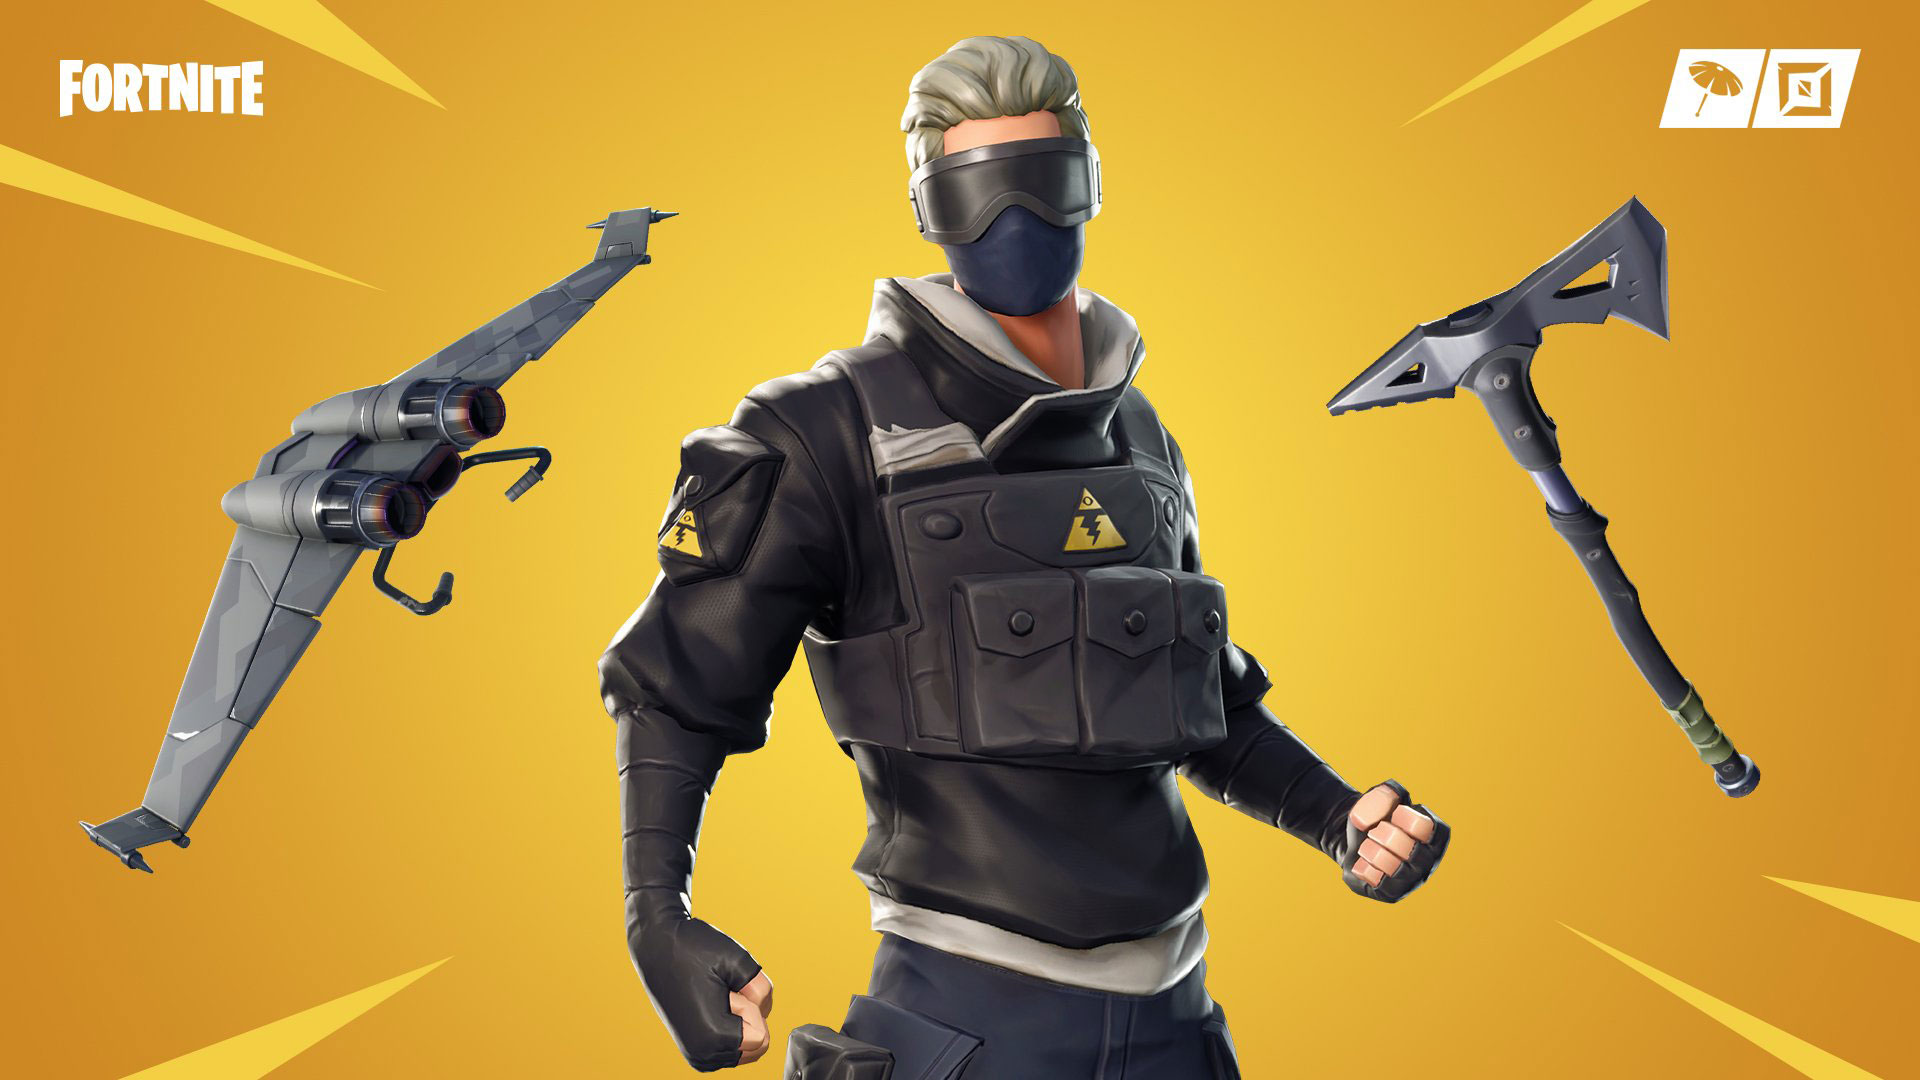 Fortnite Verge Skin Outfit Pngs Images Pro Game Guides